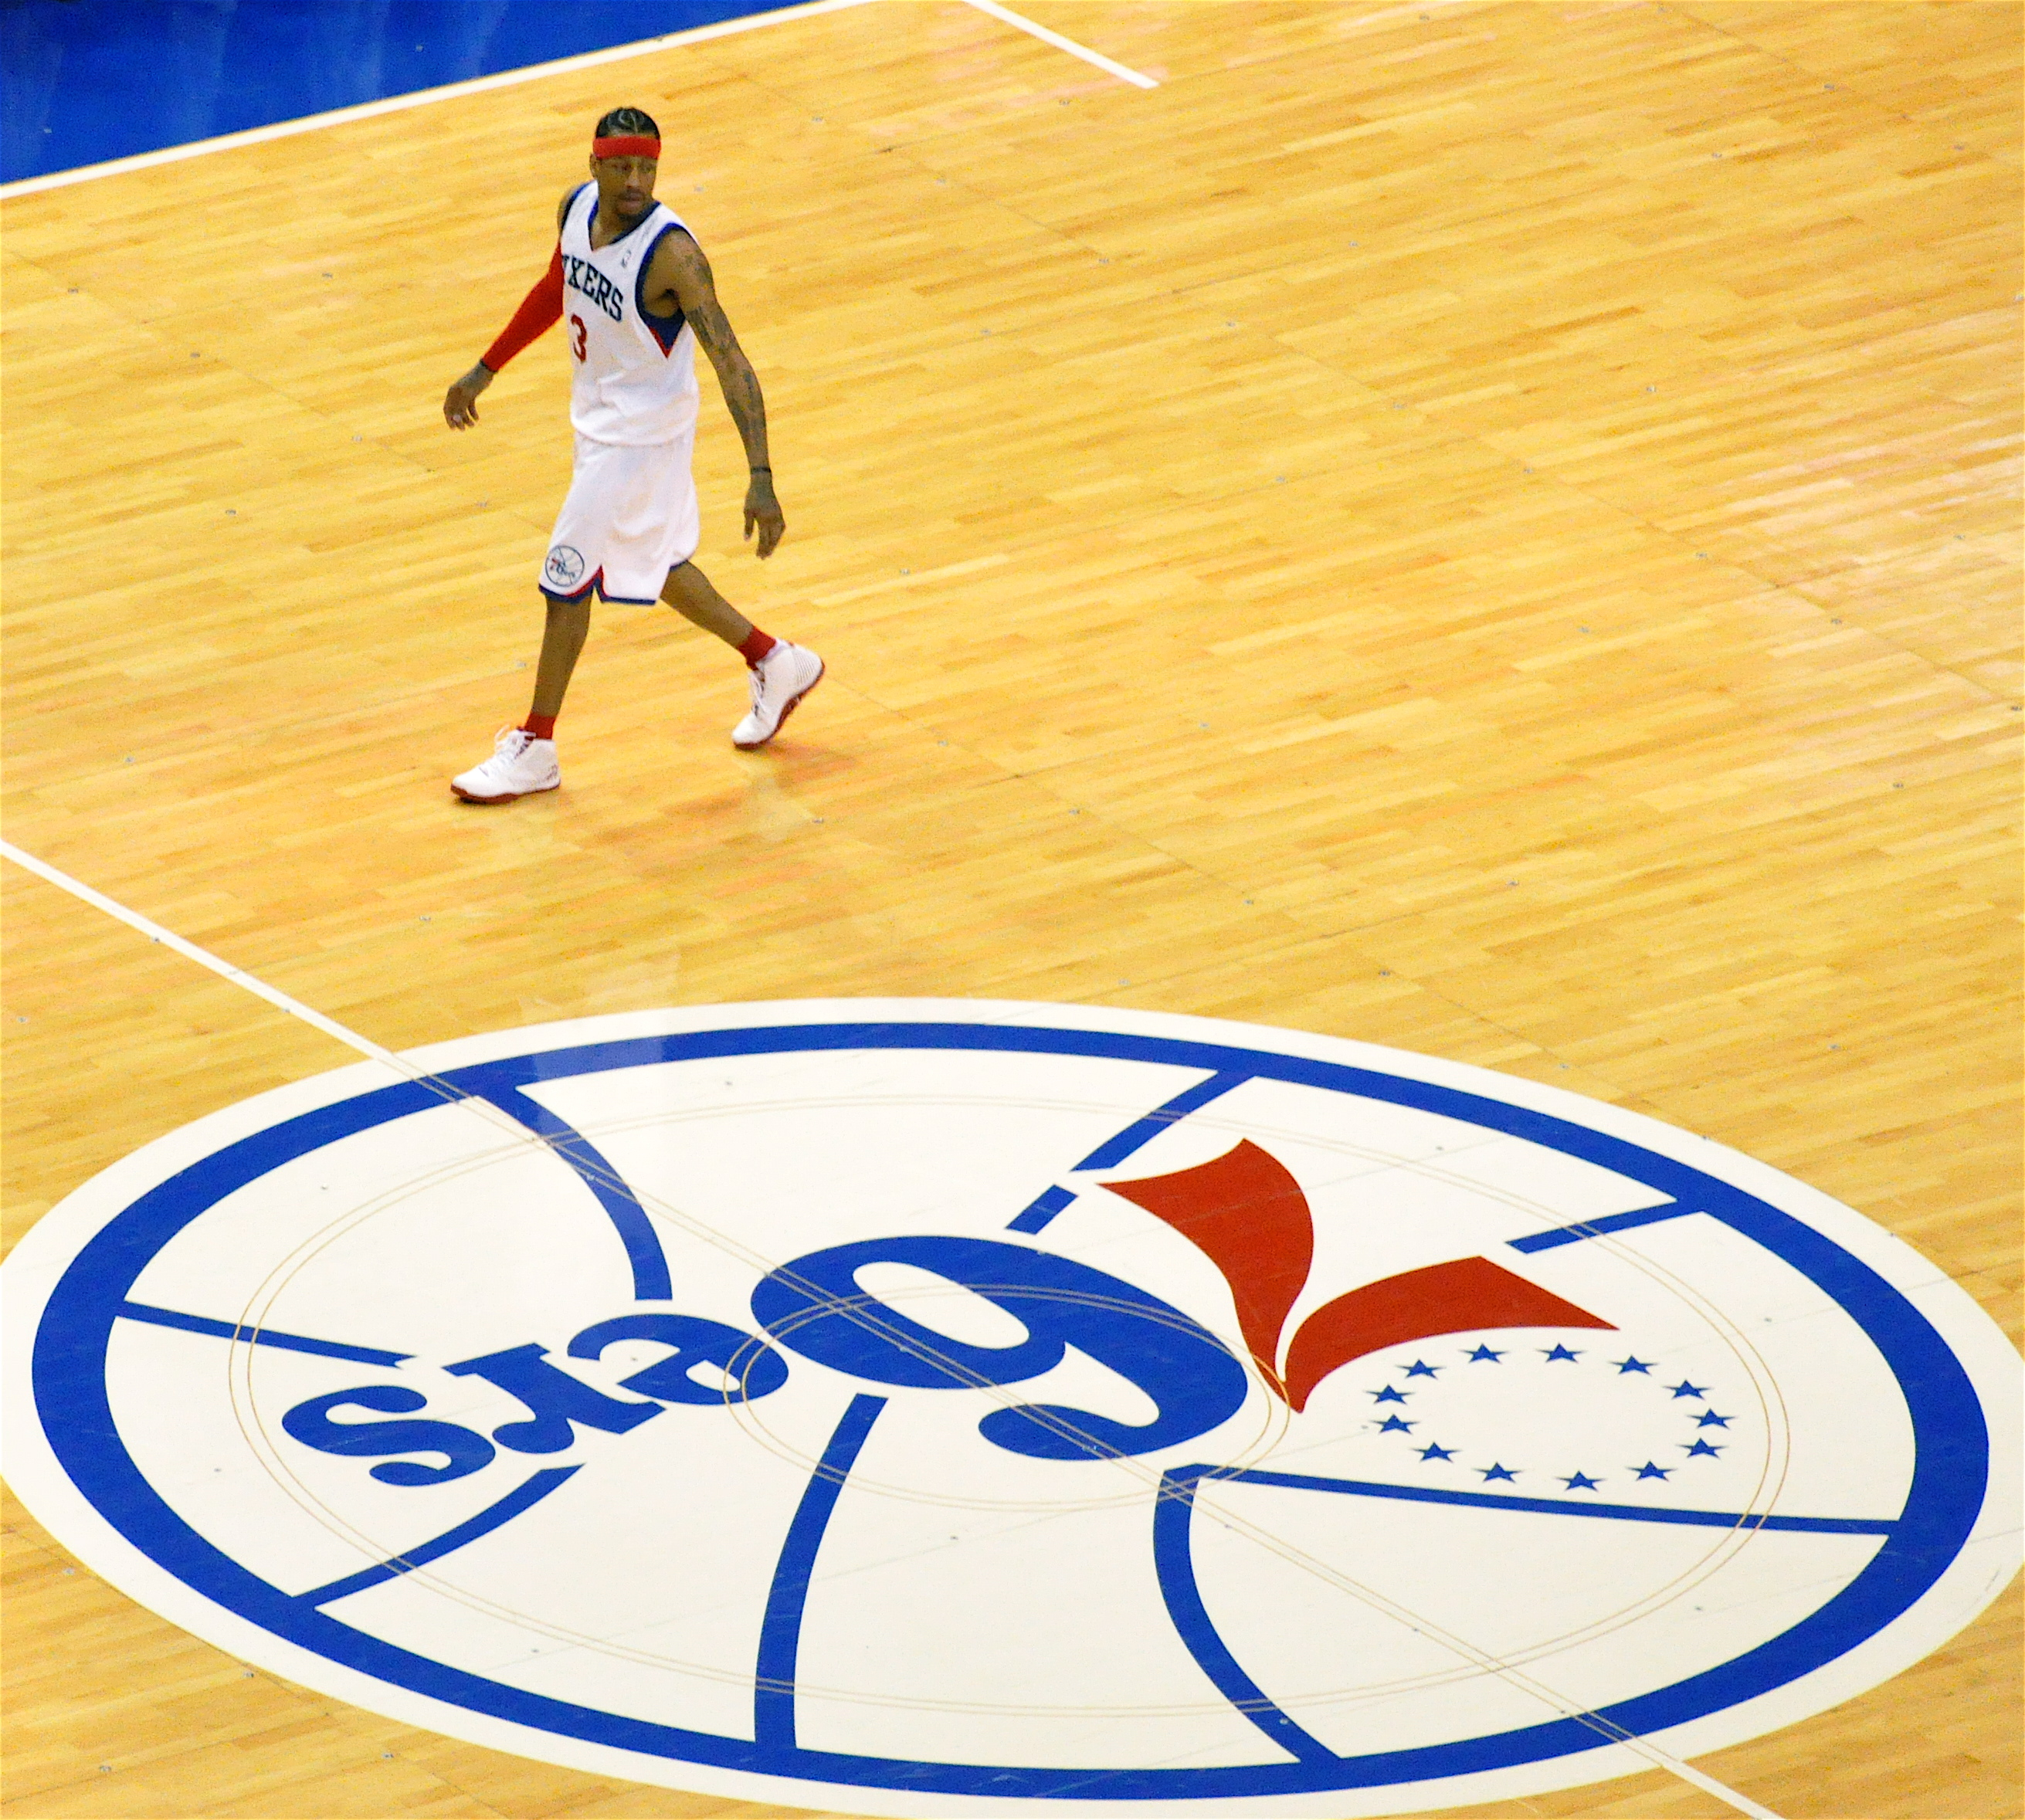 Allen_Iverson_and_the_Sixers_logo.jpg